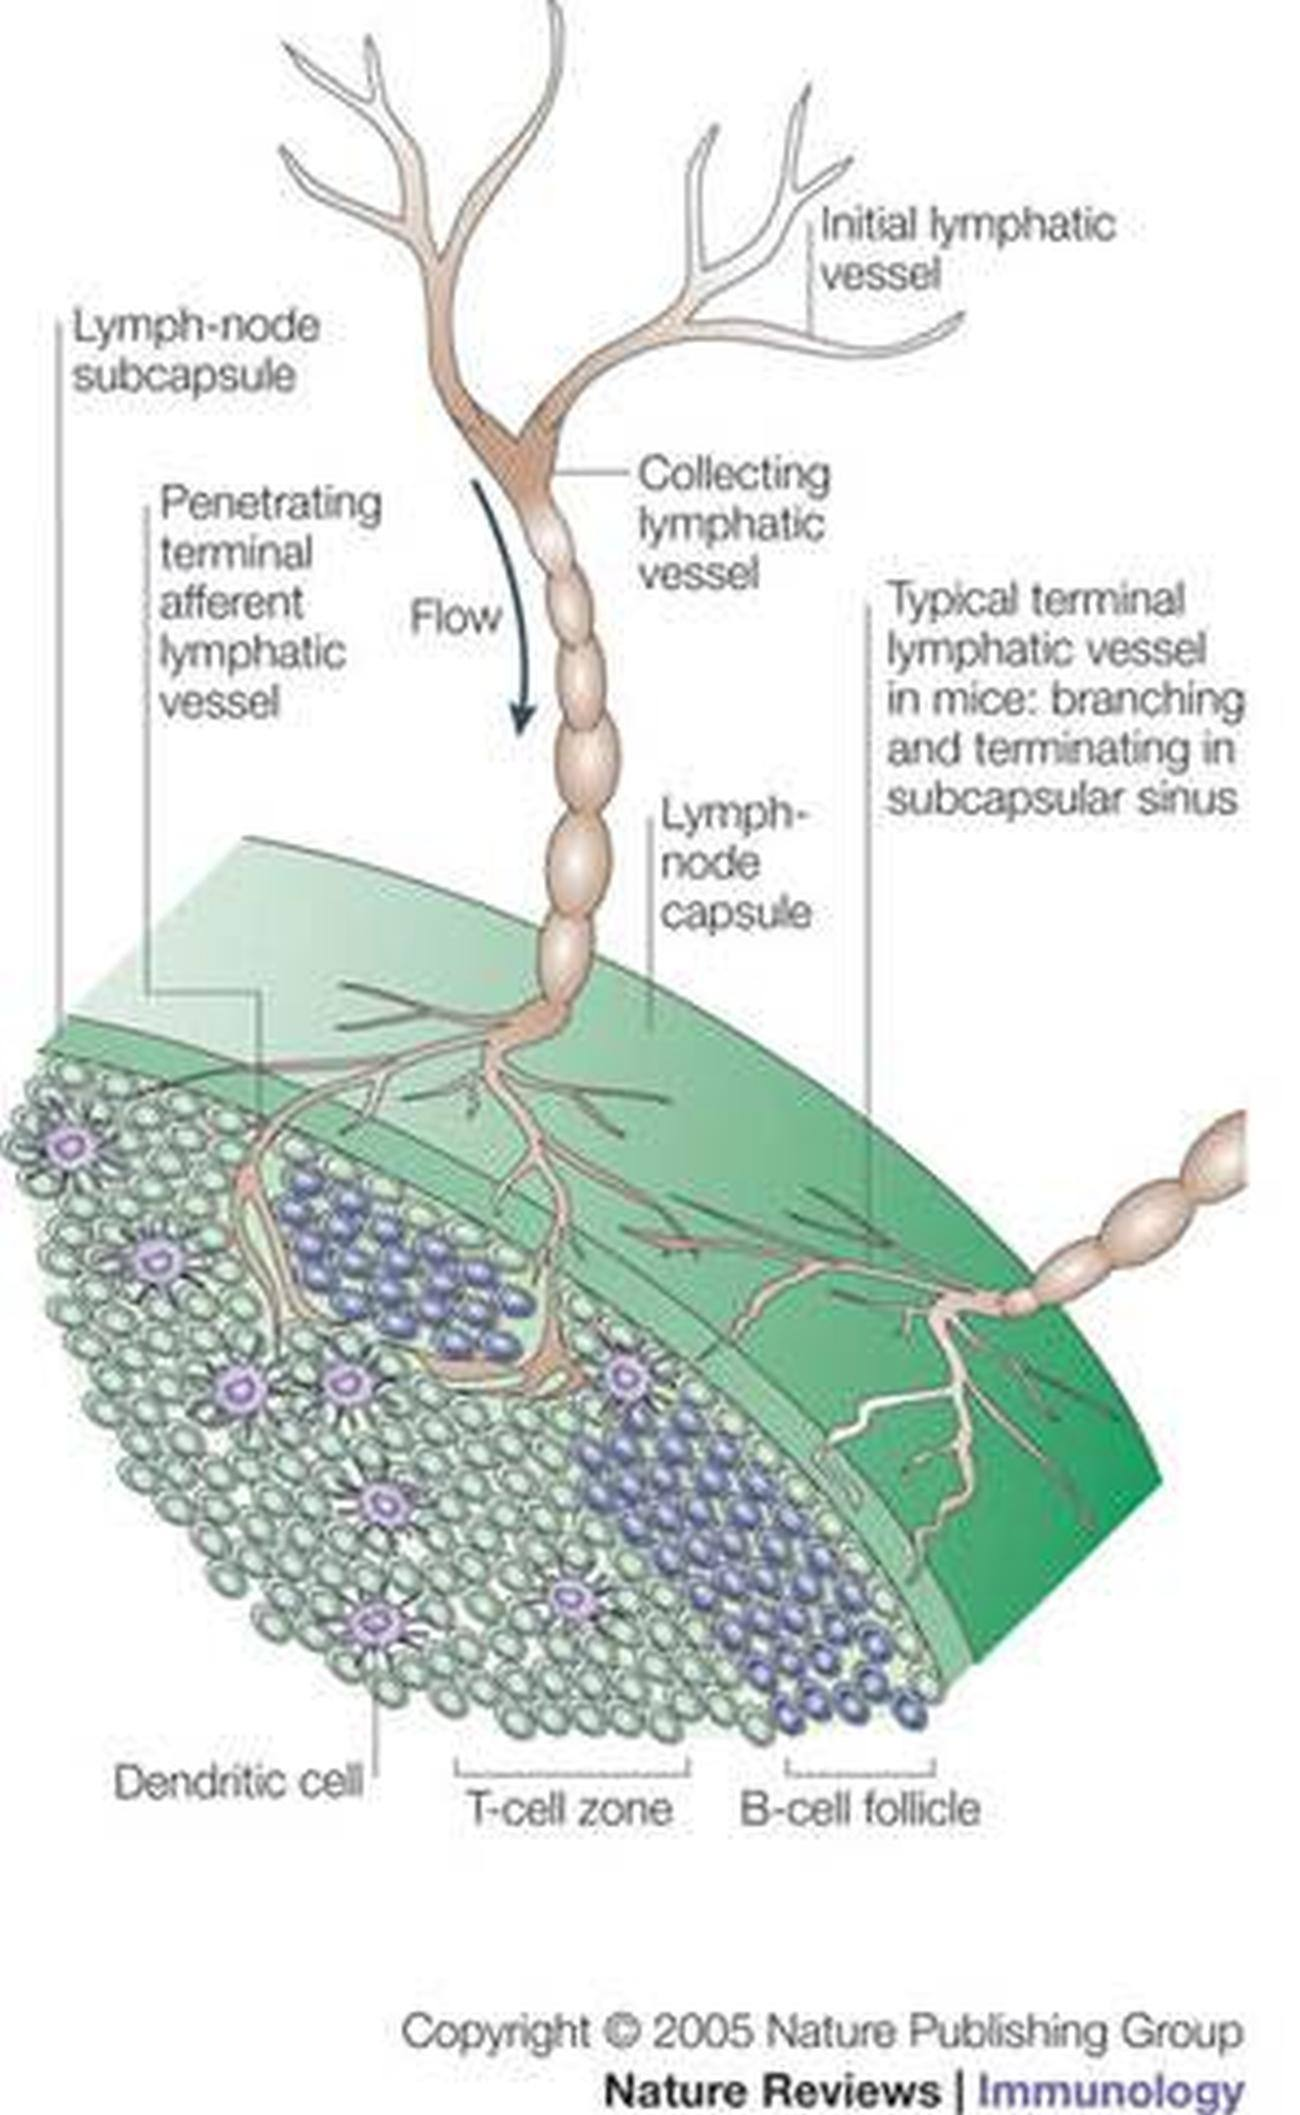 afferent lymphatic vessels Lymphatic vessels are part of the lymphatic system and transport lymph  tissue  fluid is collected by the afferent lymphatic vessels which drain.